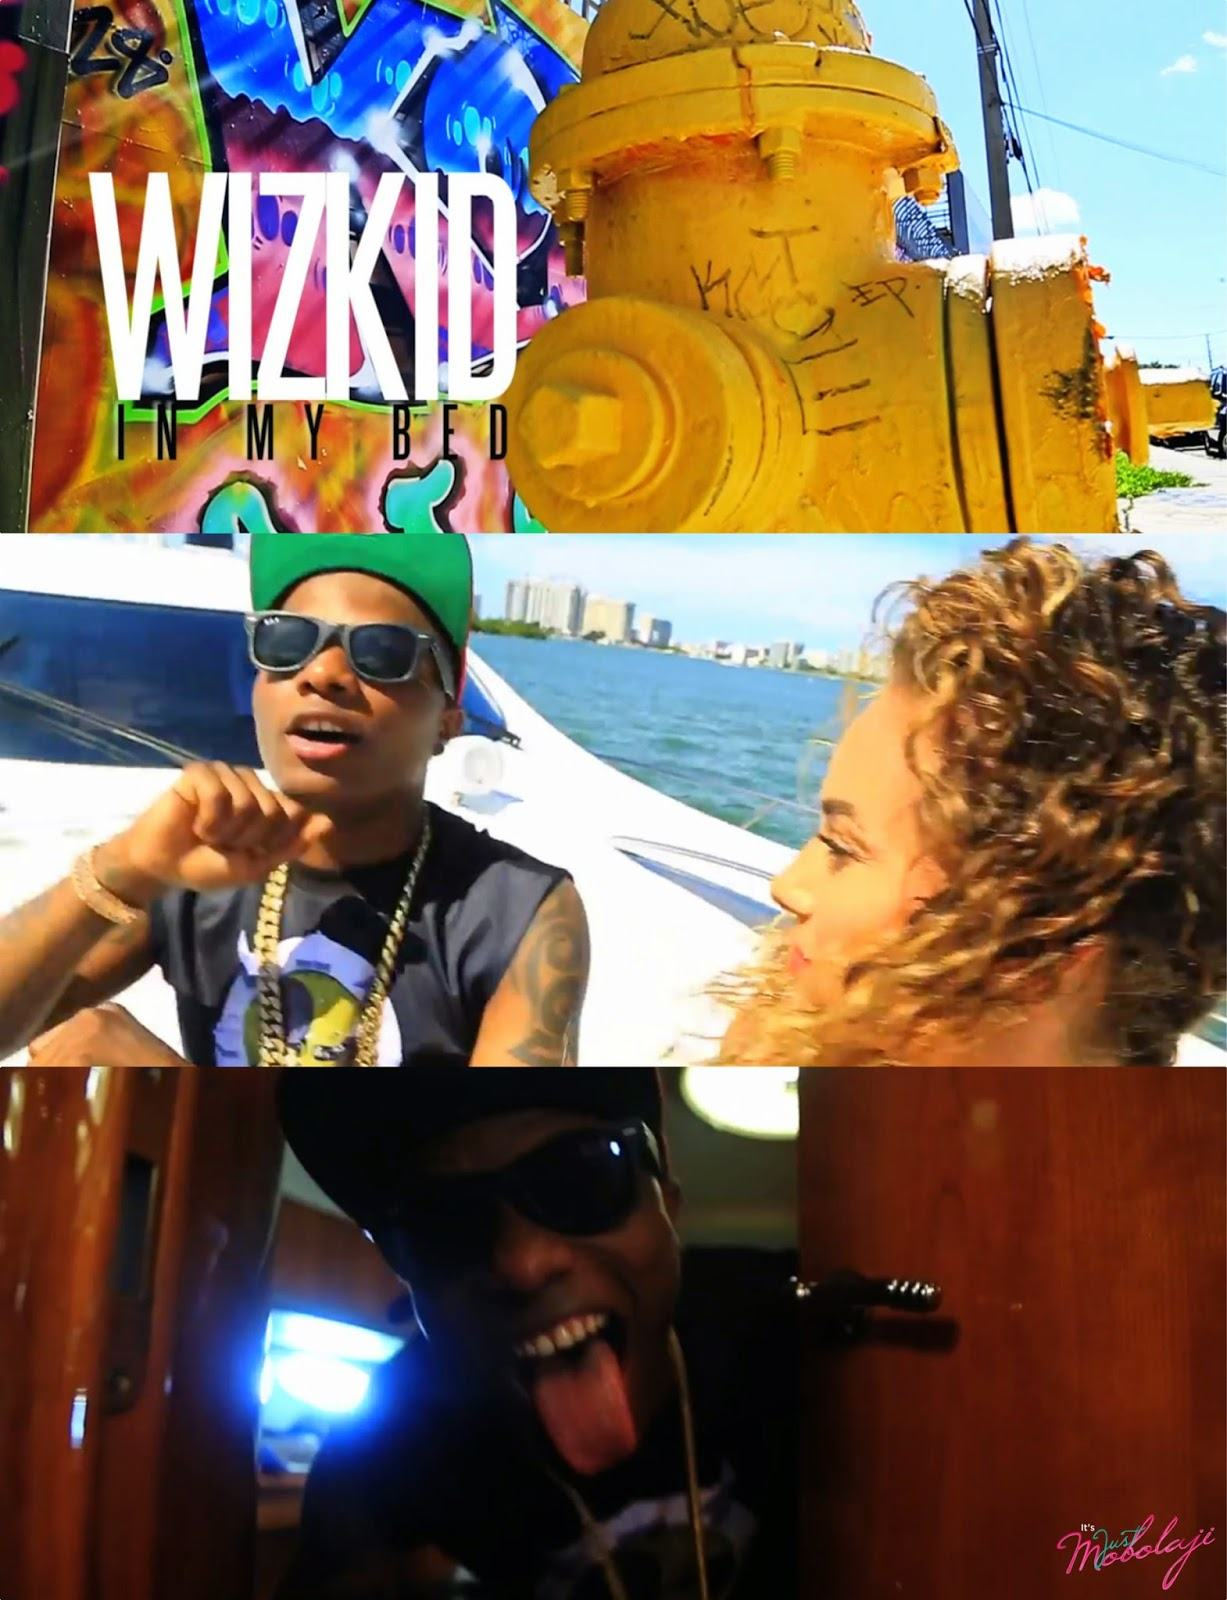 Wizkid - In My Bed [ViDeo]